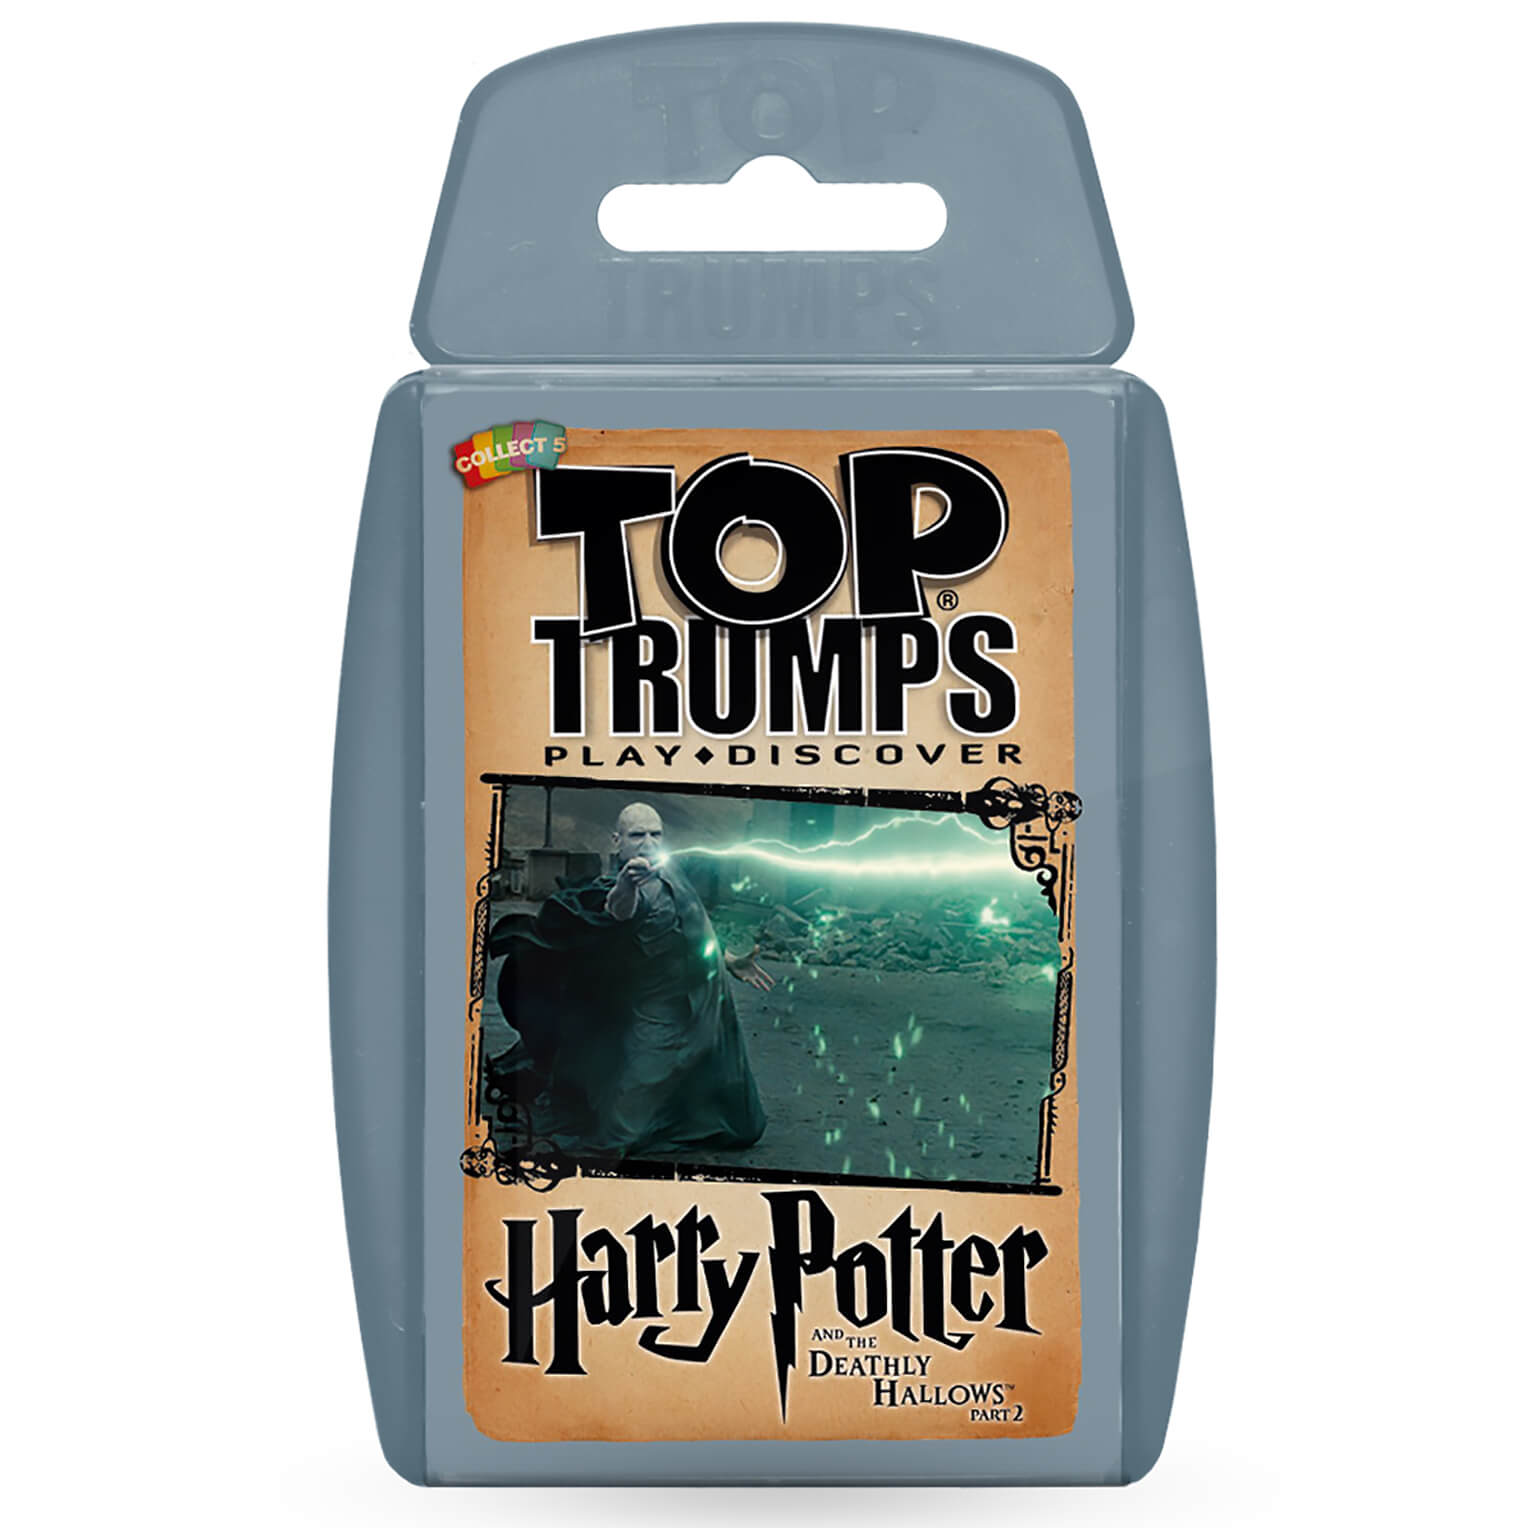 Image of Top Trumps Card Game - Harry Potter and the Deathly Hallows 2 Edition